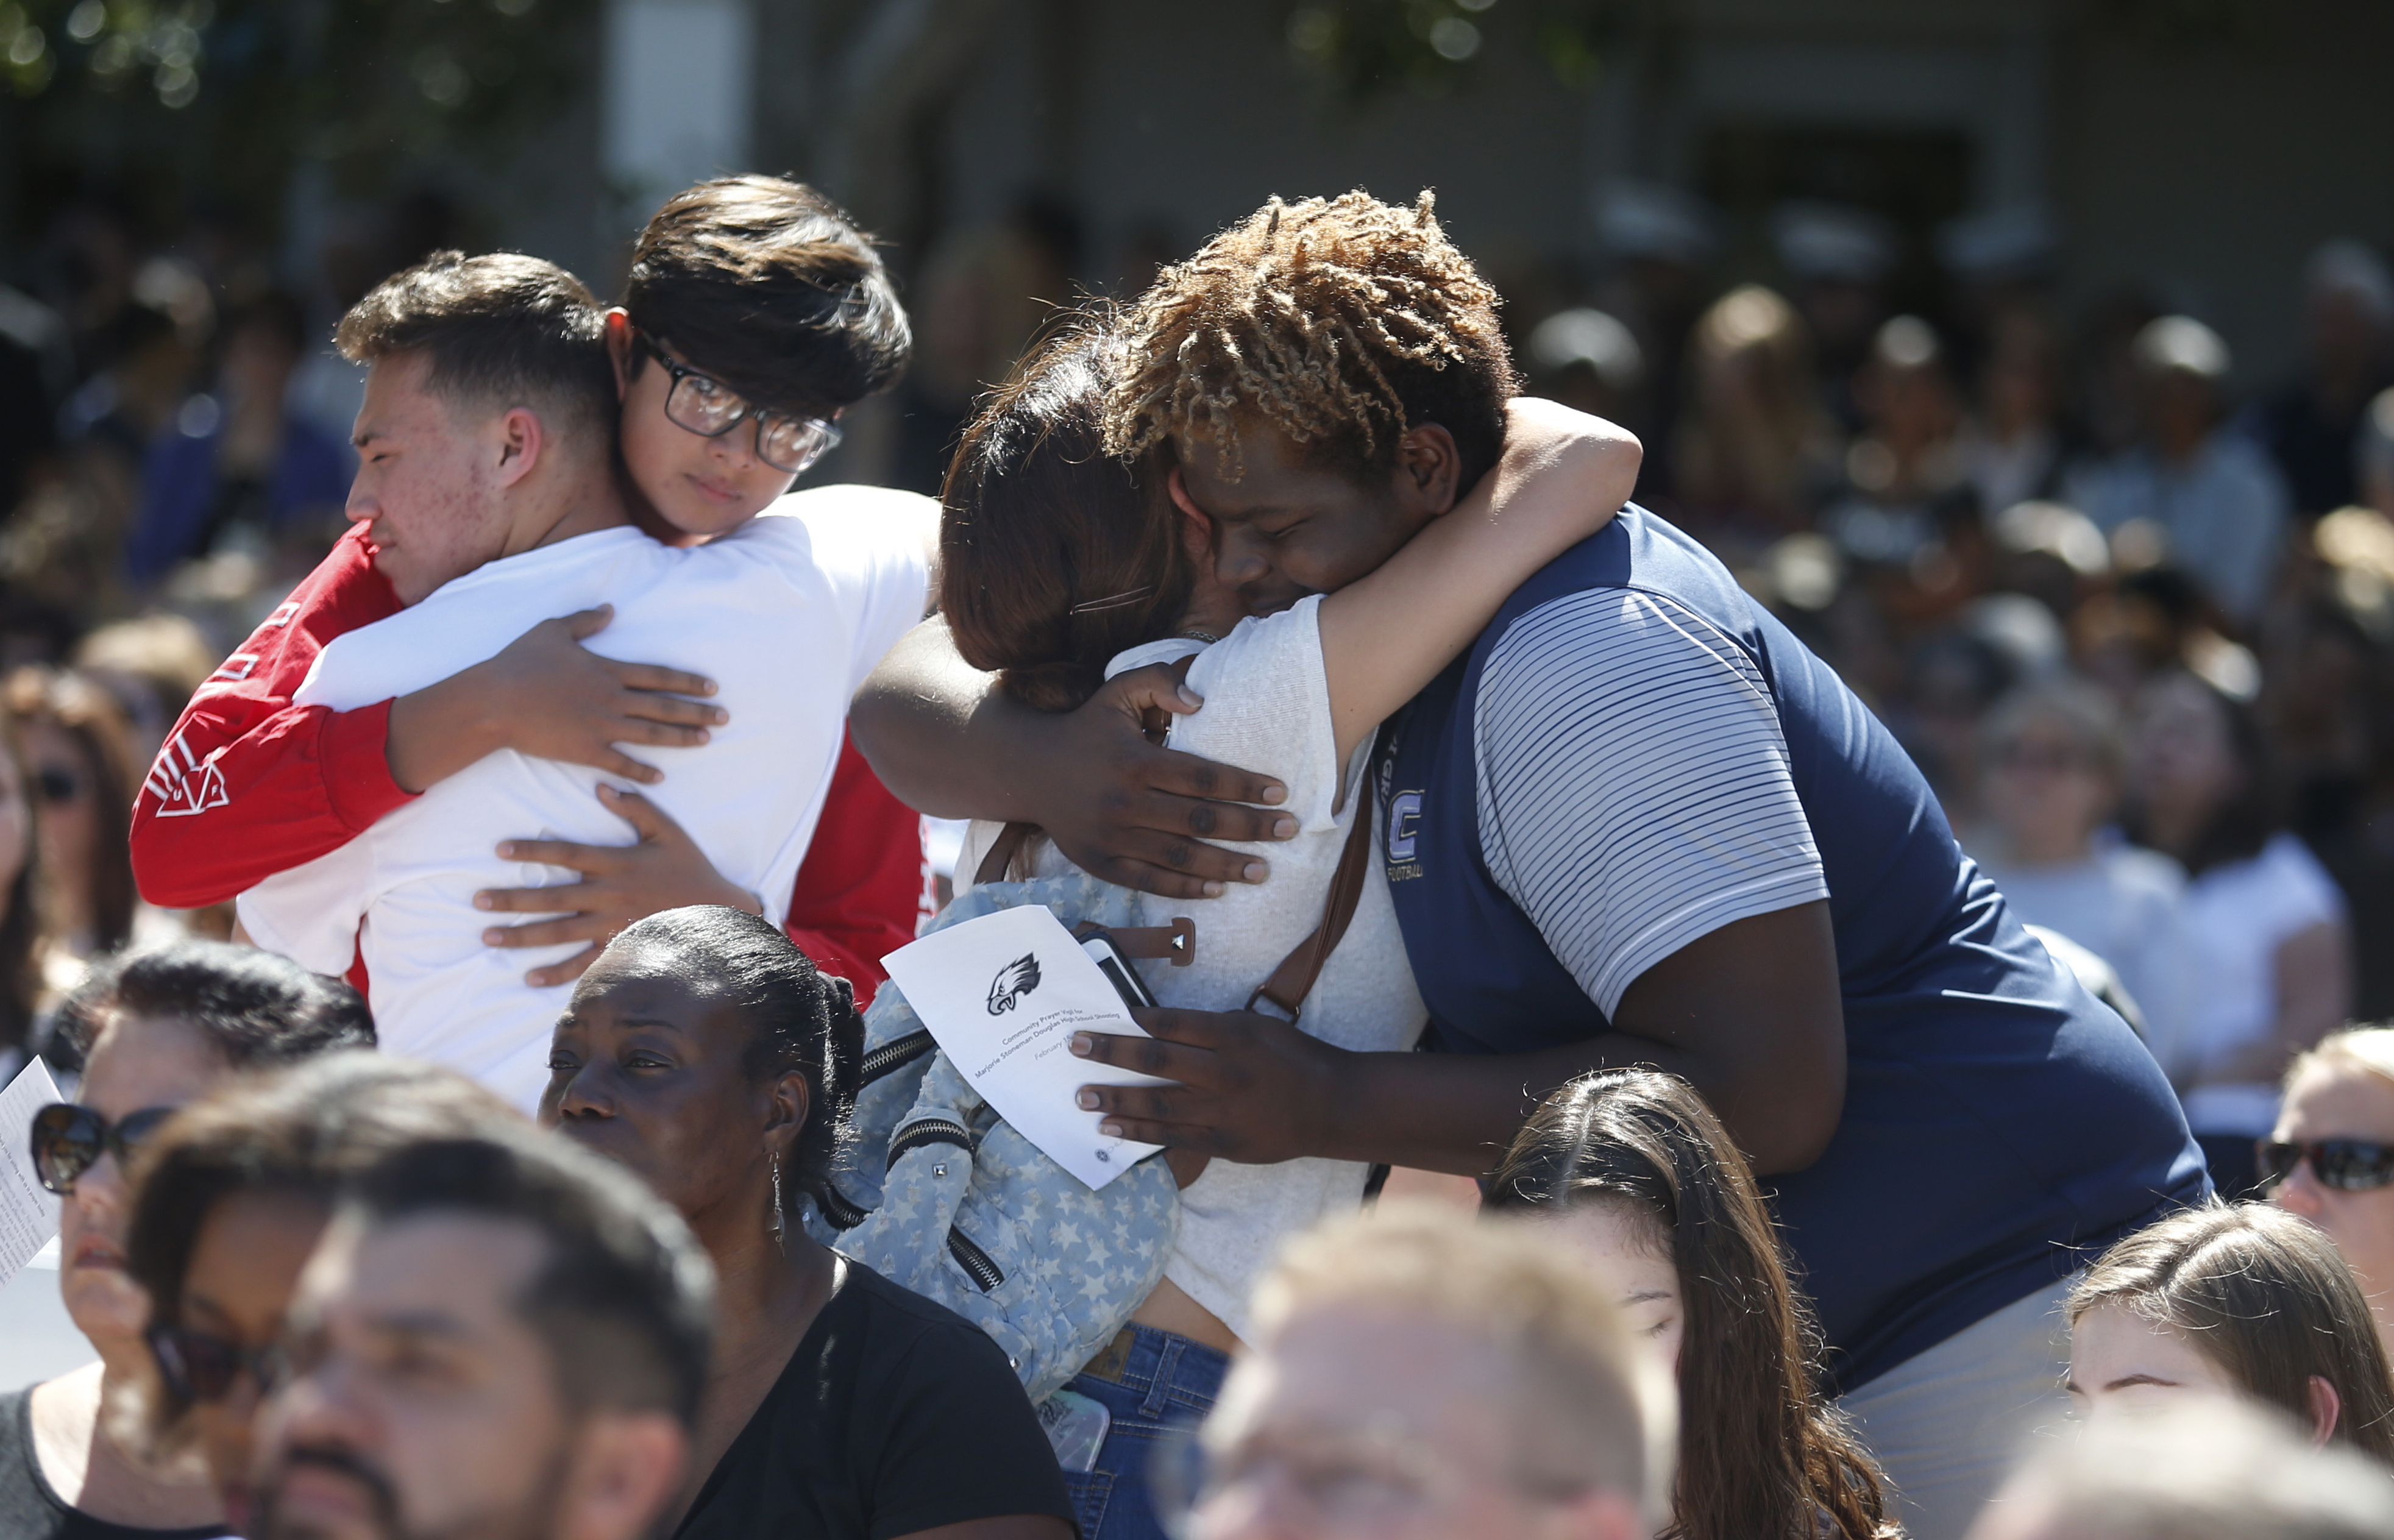 People comfort each other at a prayer vigil for the victims of the shooting (Wilfredo Lee/AP)